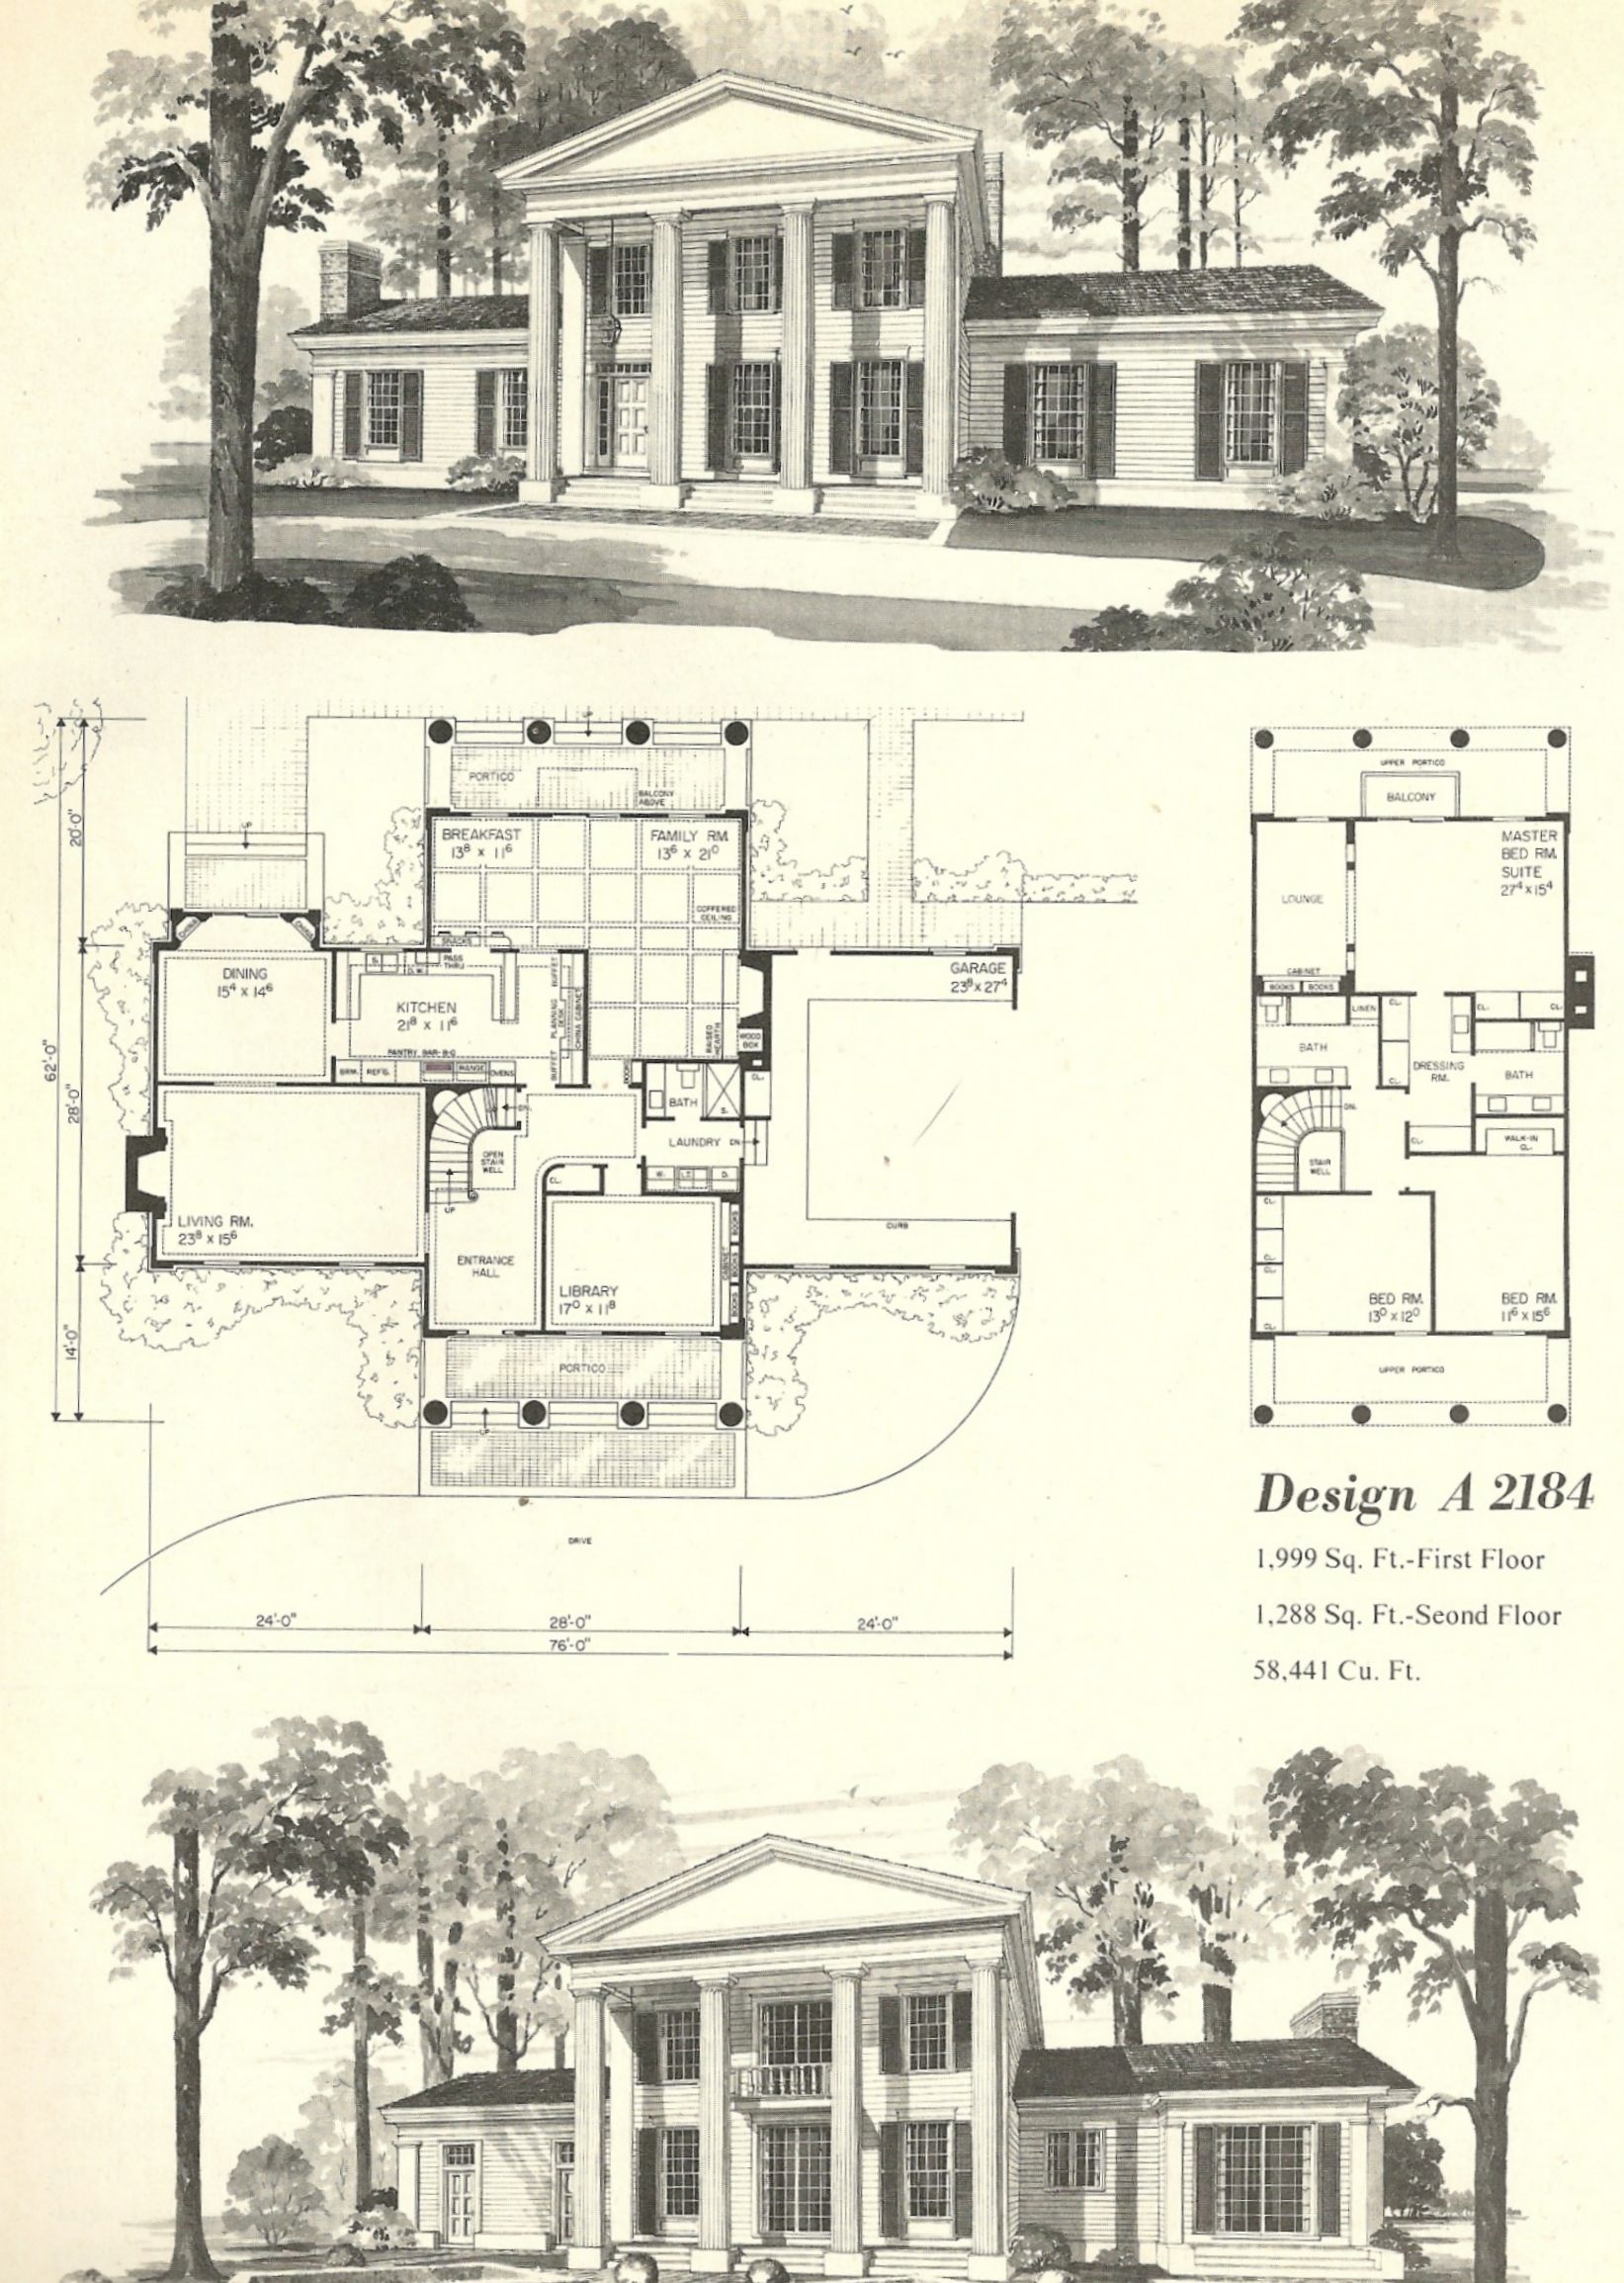 Vintage House Plans 2184 With Images Vintage House Plans